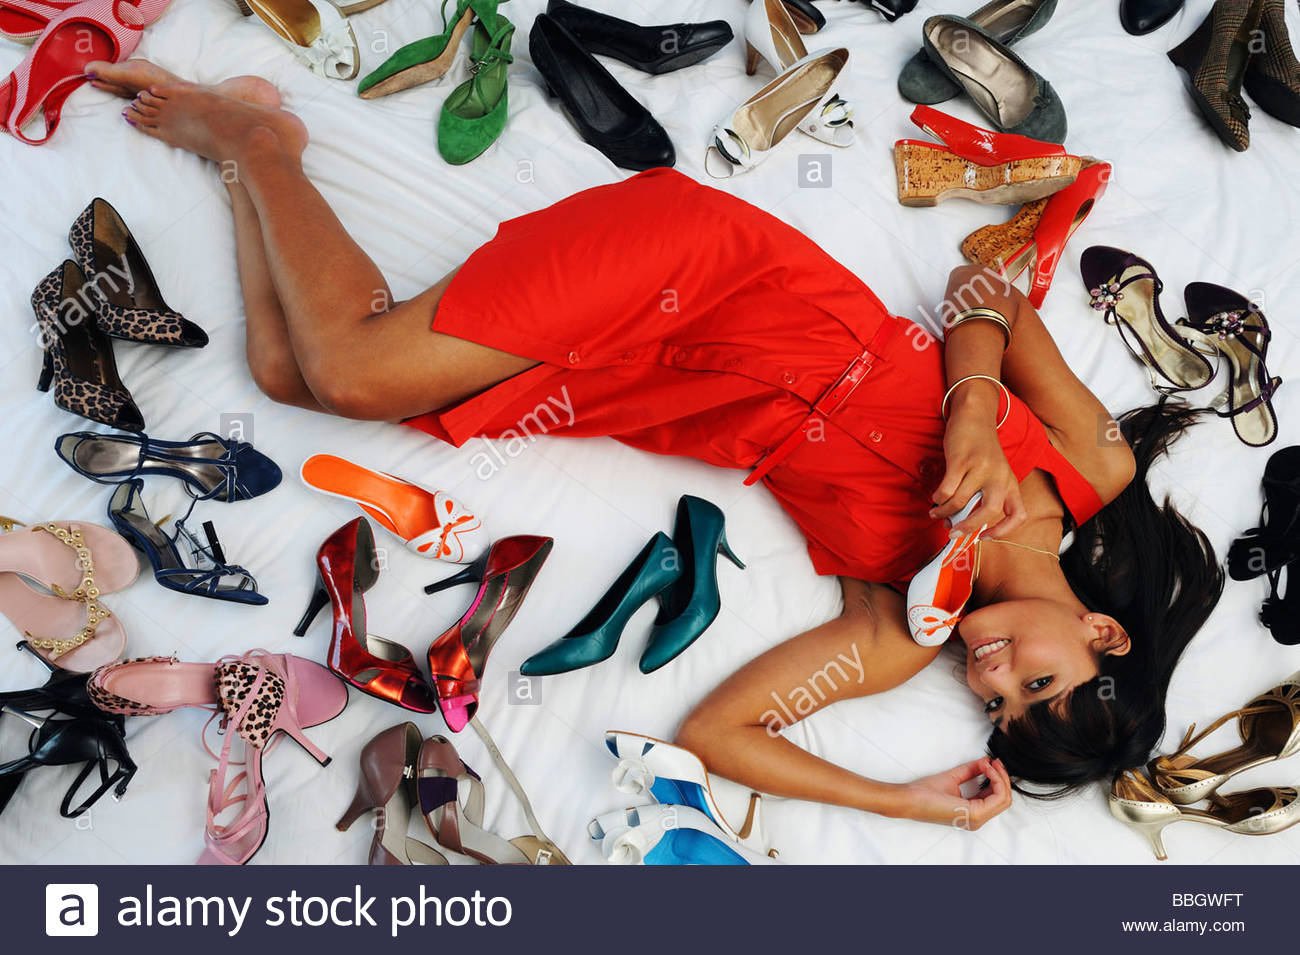 Portrait a young woman surrounded by shoes on a bed - Stock Image